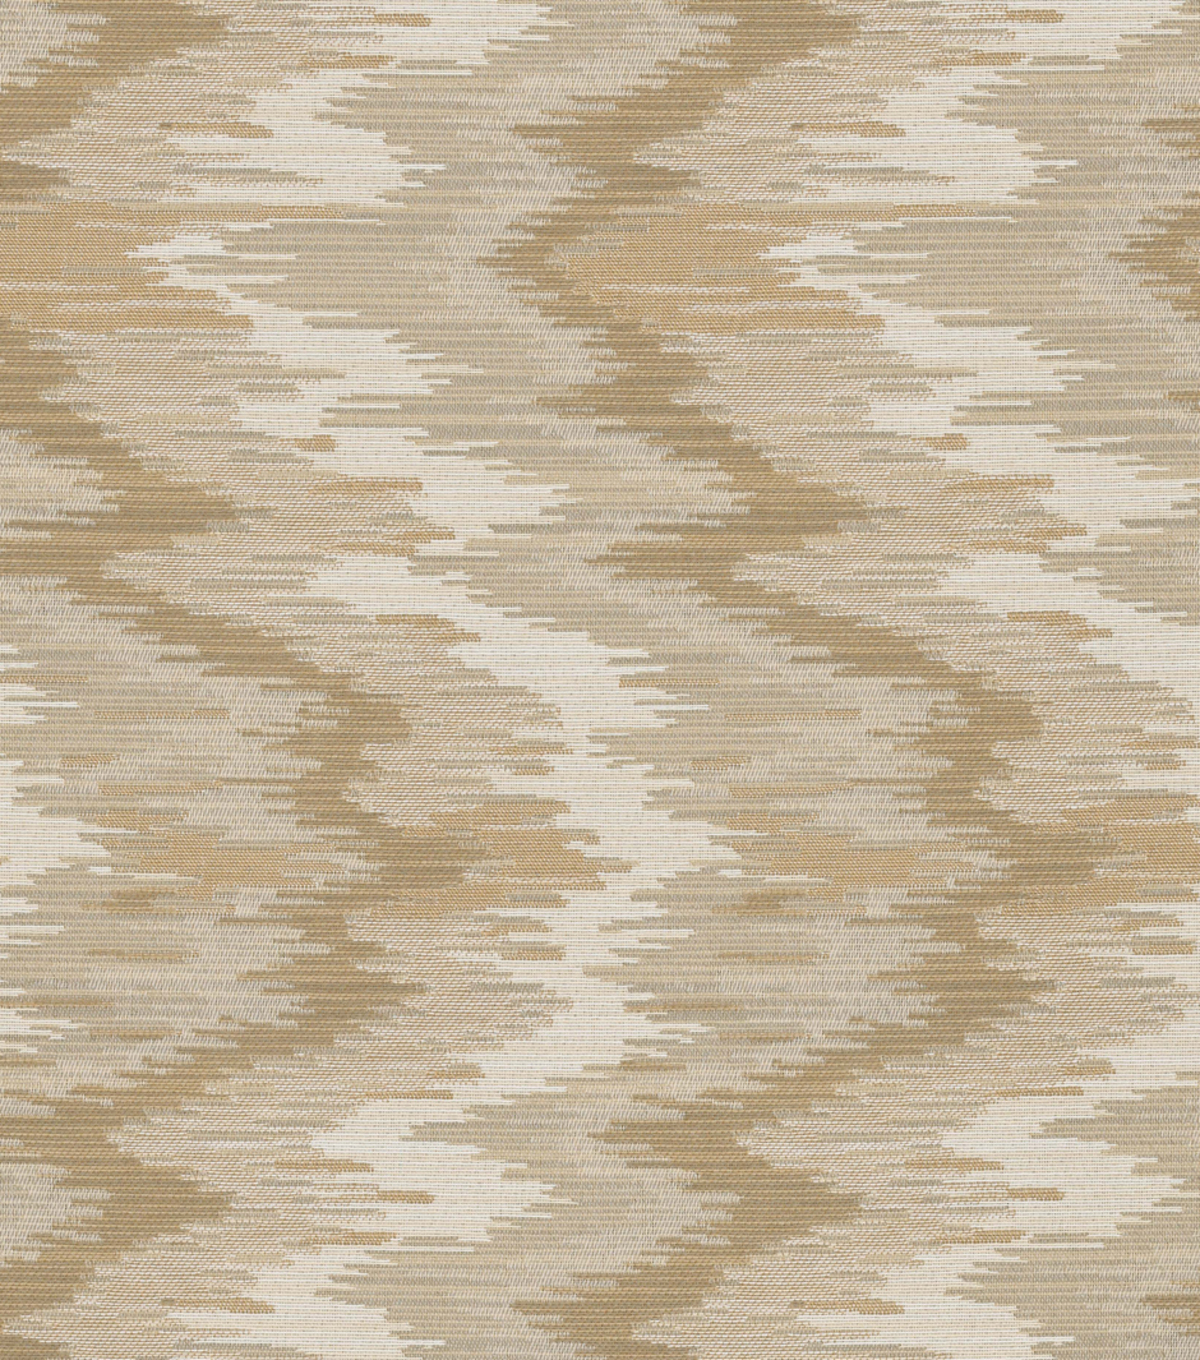 Home Decor 8\u0022x8\u0022 Fabric Swatch-Aumont Way Rock